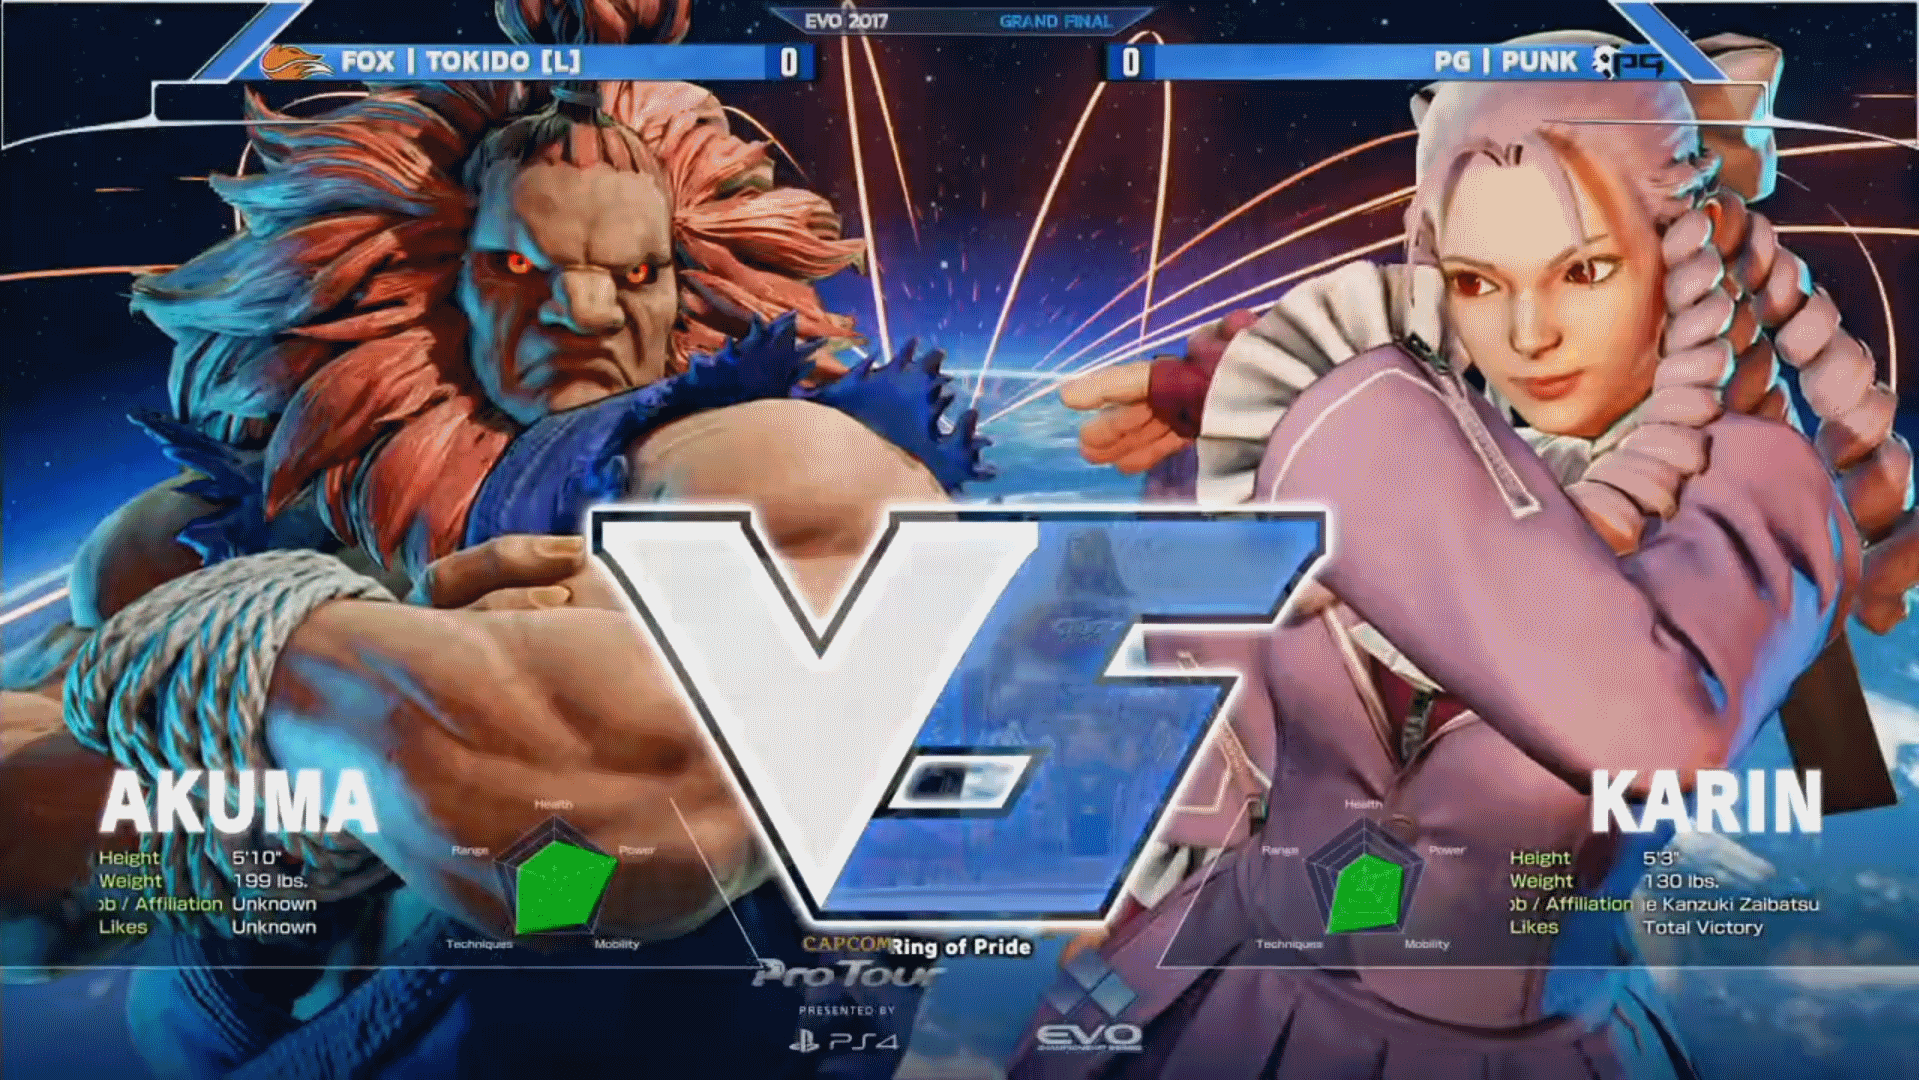 EVO is the biggest fighting game tournament around